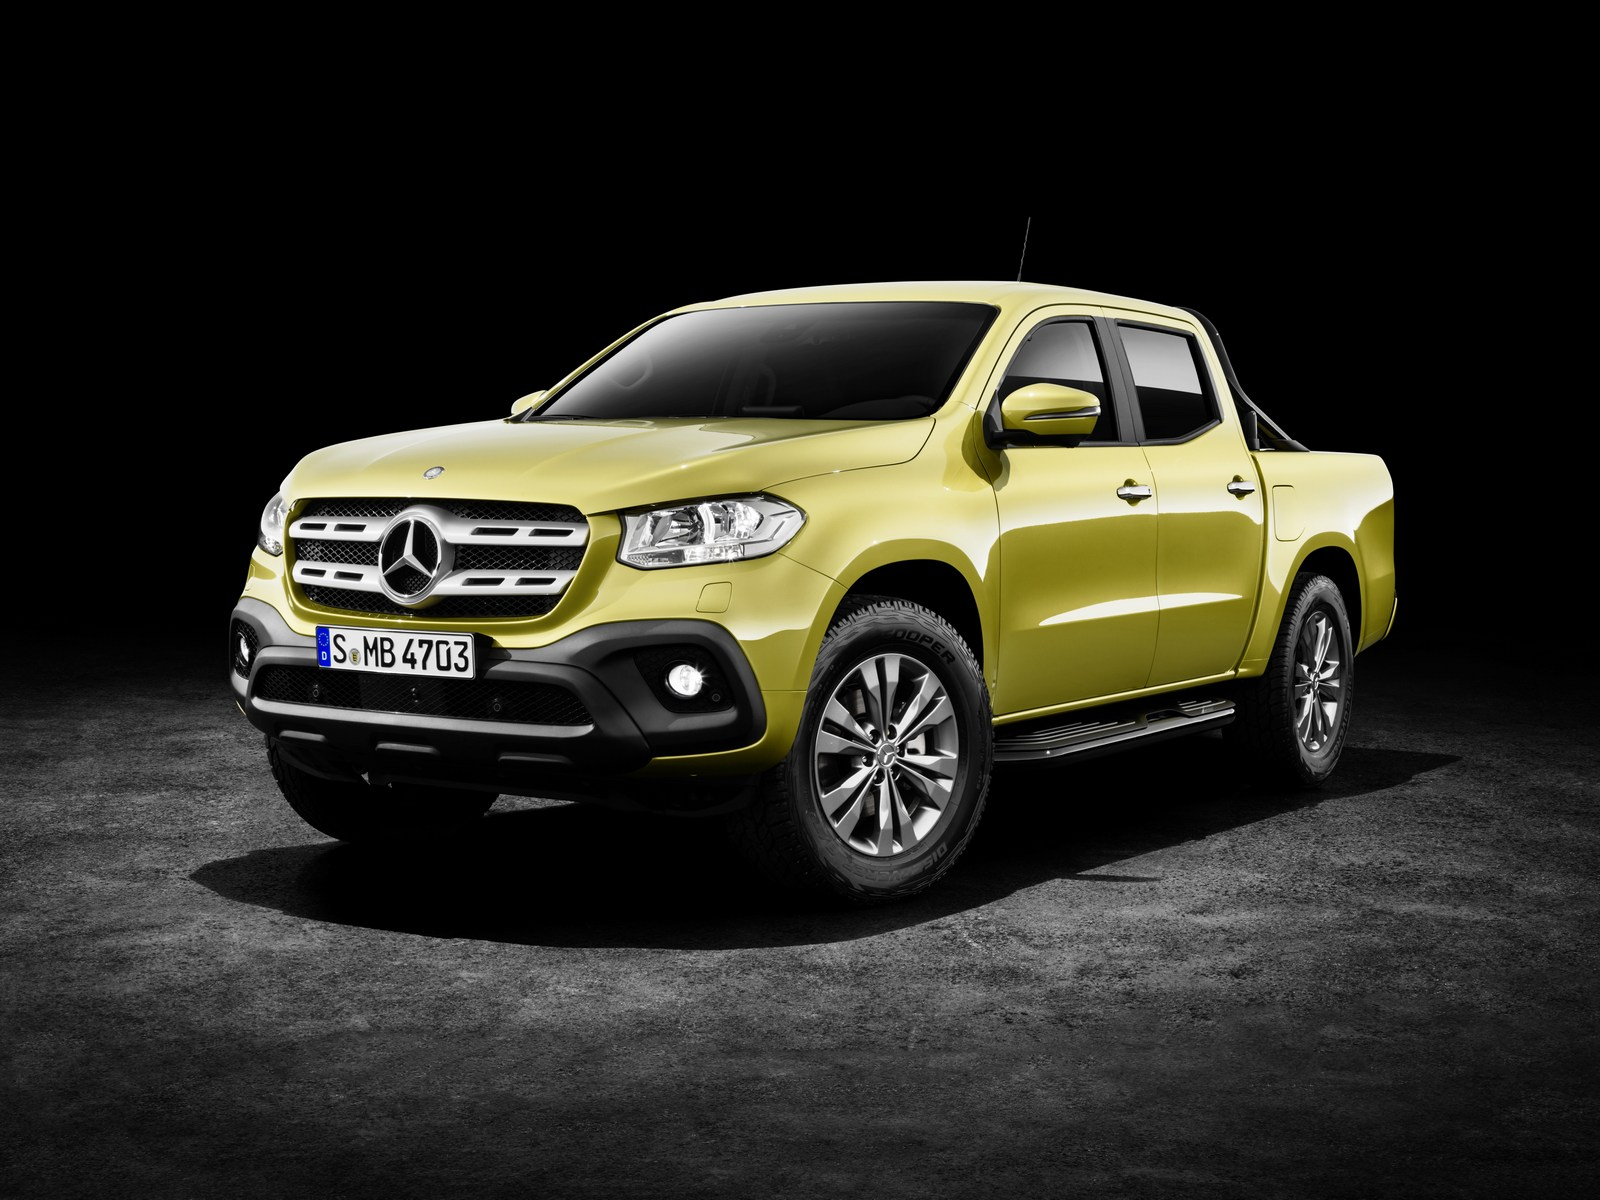 Mercedes-Benz X-Klasse – Exterieur, Limonitgelb metallic, Ausstattungslinie PROGRESSIVE, Side Bar und Styling Bar (Mercedes-Benz Zubehör) 